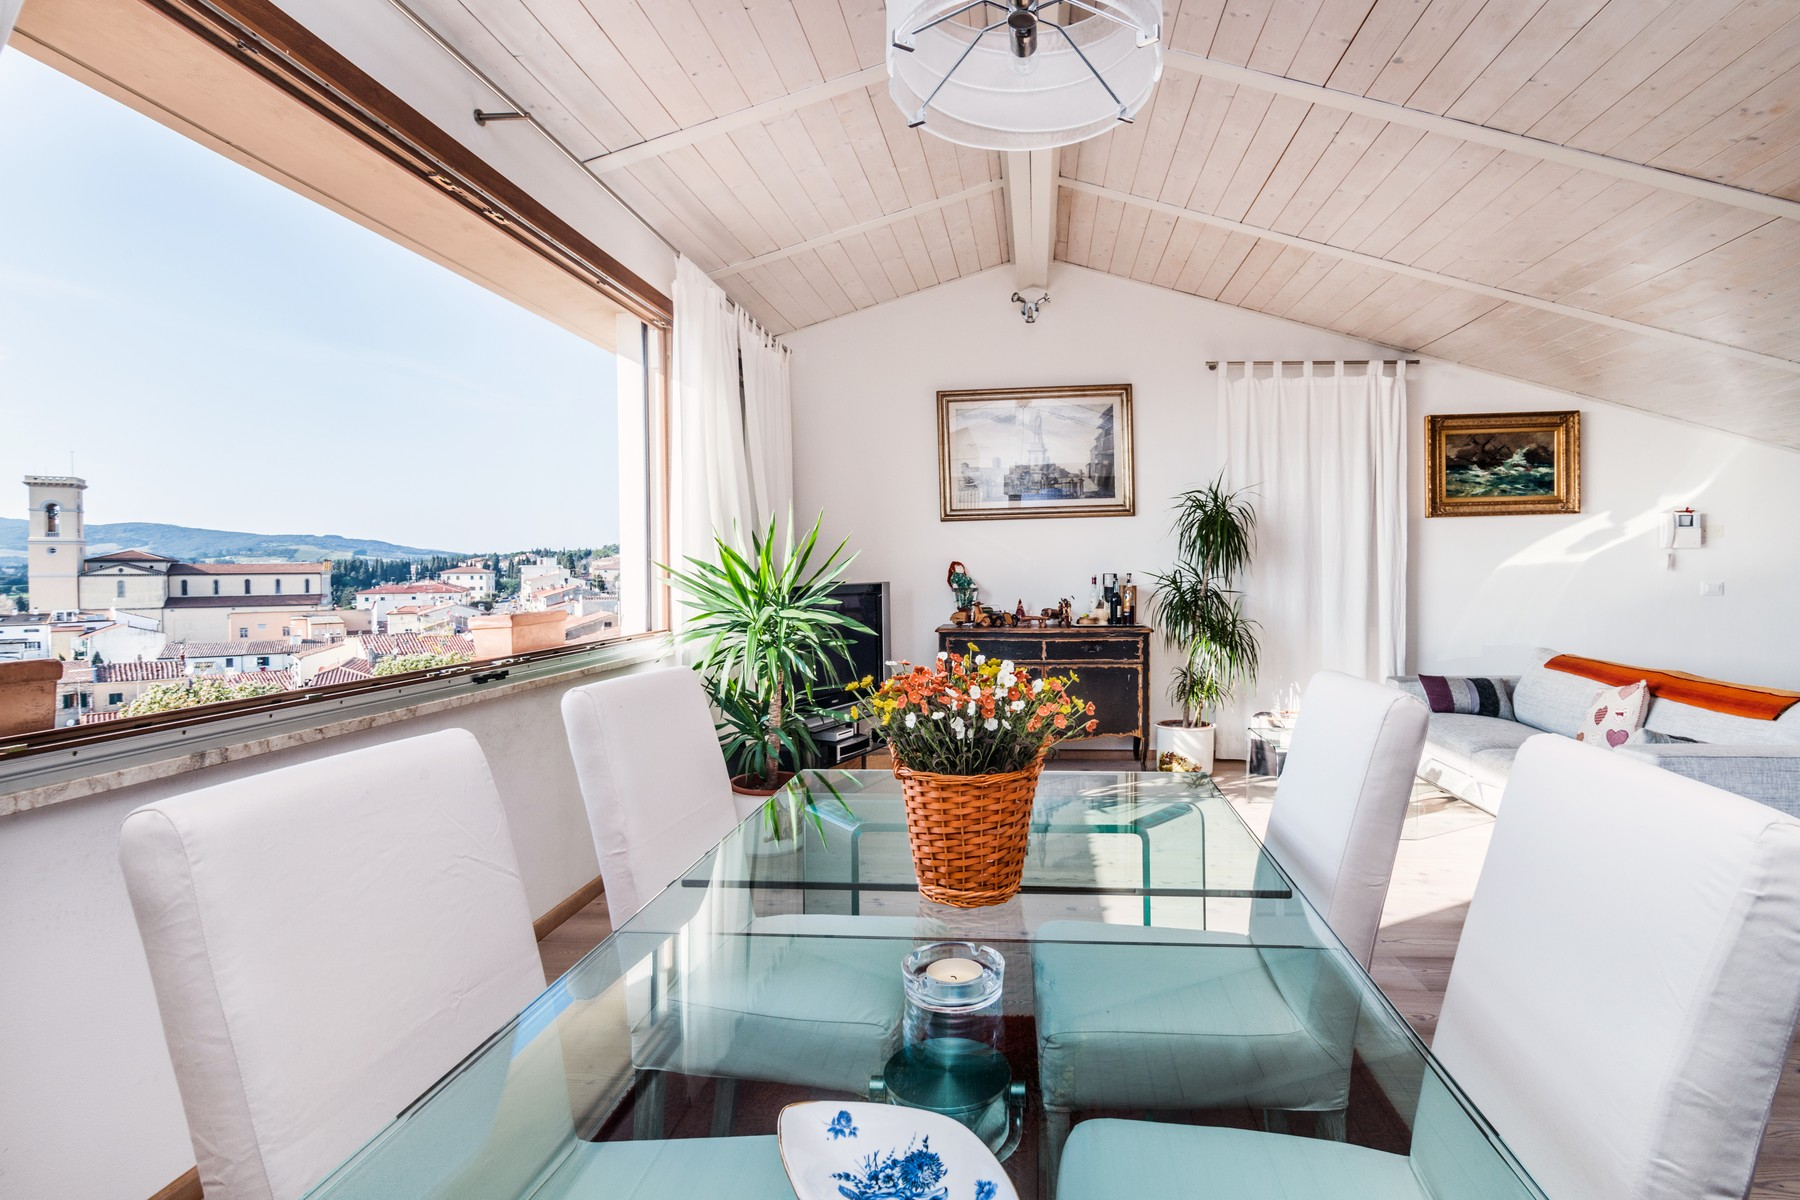 Additional photo for property listing at Lovely villa with panoramic views over the sea Via delle Grotte Rosignano Marittimo, Livorno 57014 Italy